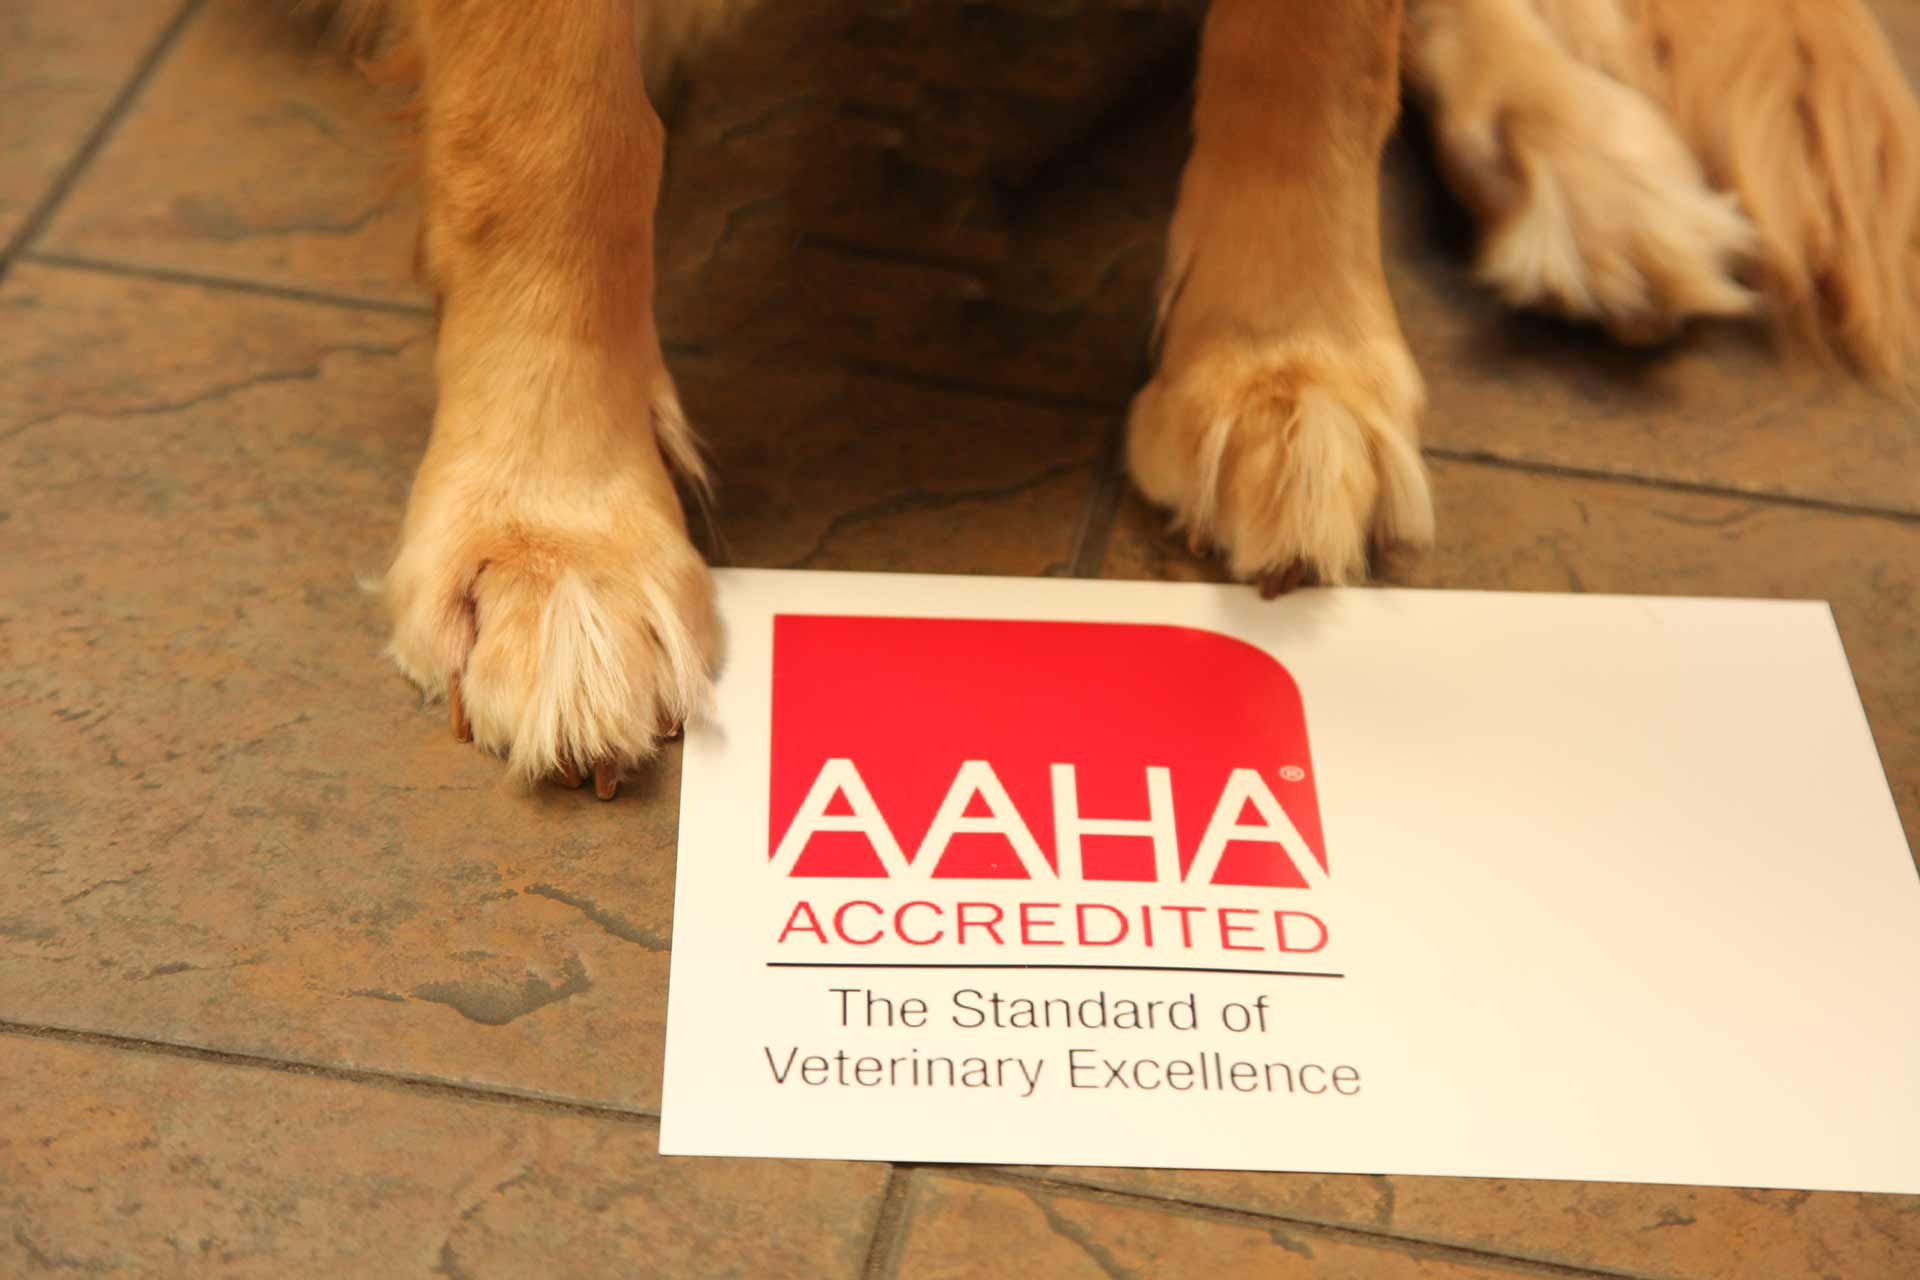 Dog On AAHA Sign